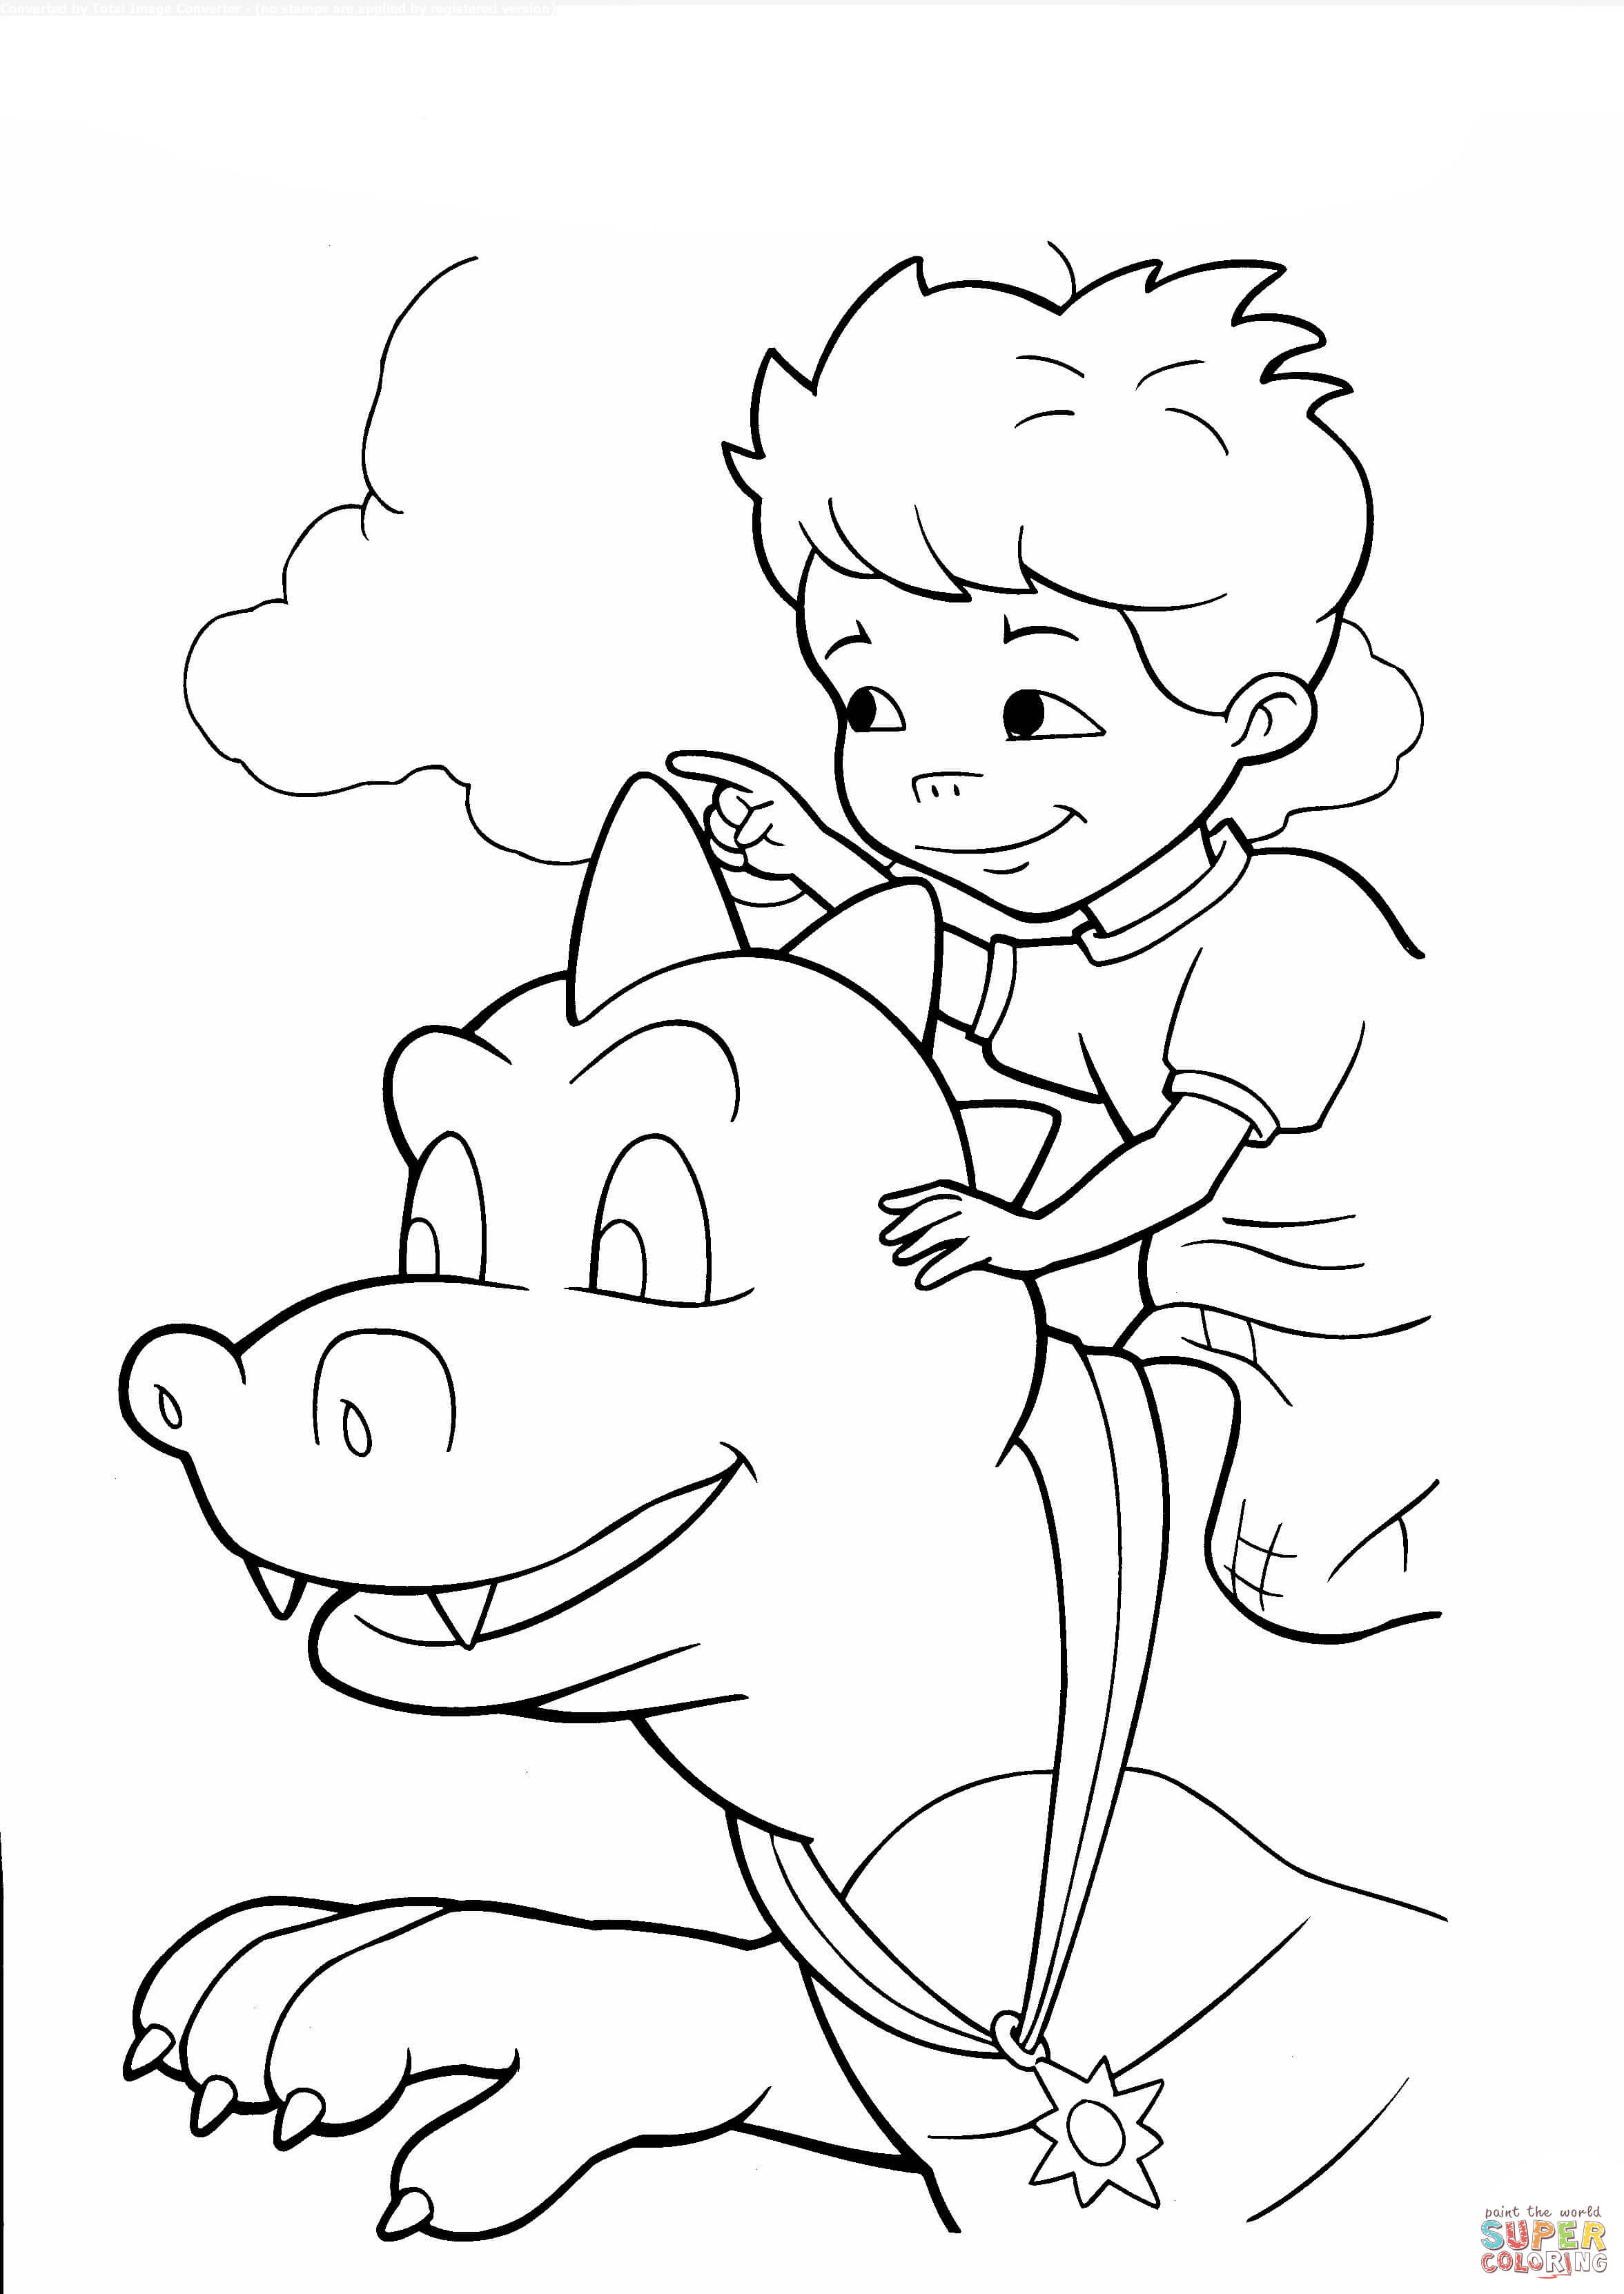 peter max coloring pages ord and max coloring page free printable coloring pages pages max peter coloring